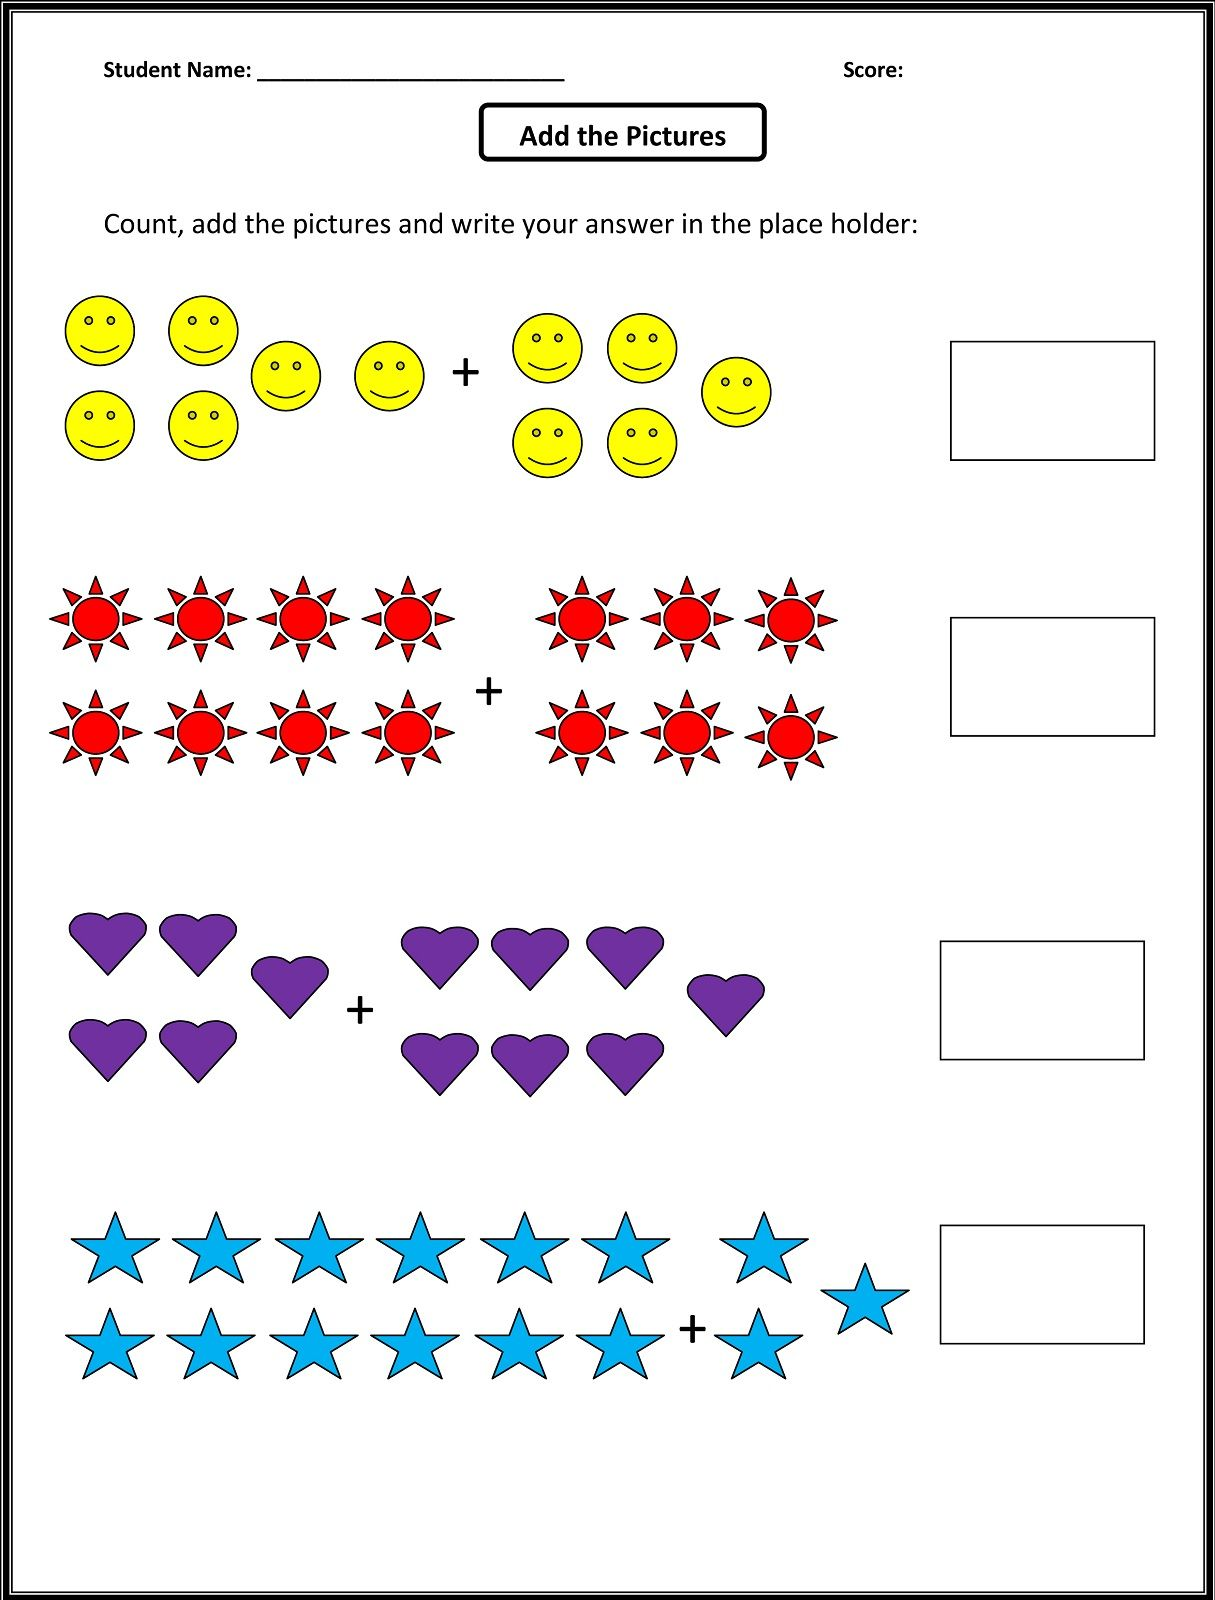 Worksheets For 1st Grade Math First Grade Math Worksheets Free Math Worksheets 1st Grade Math